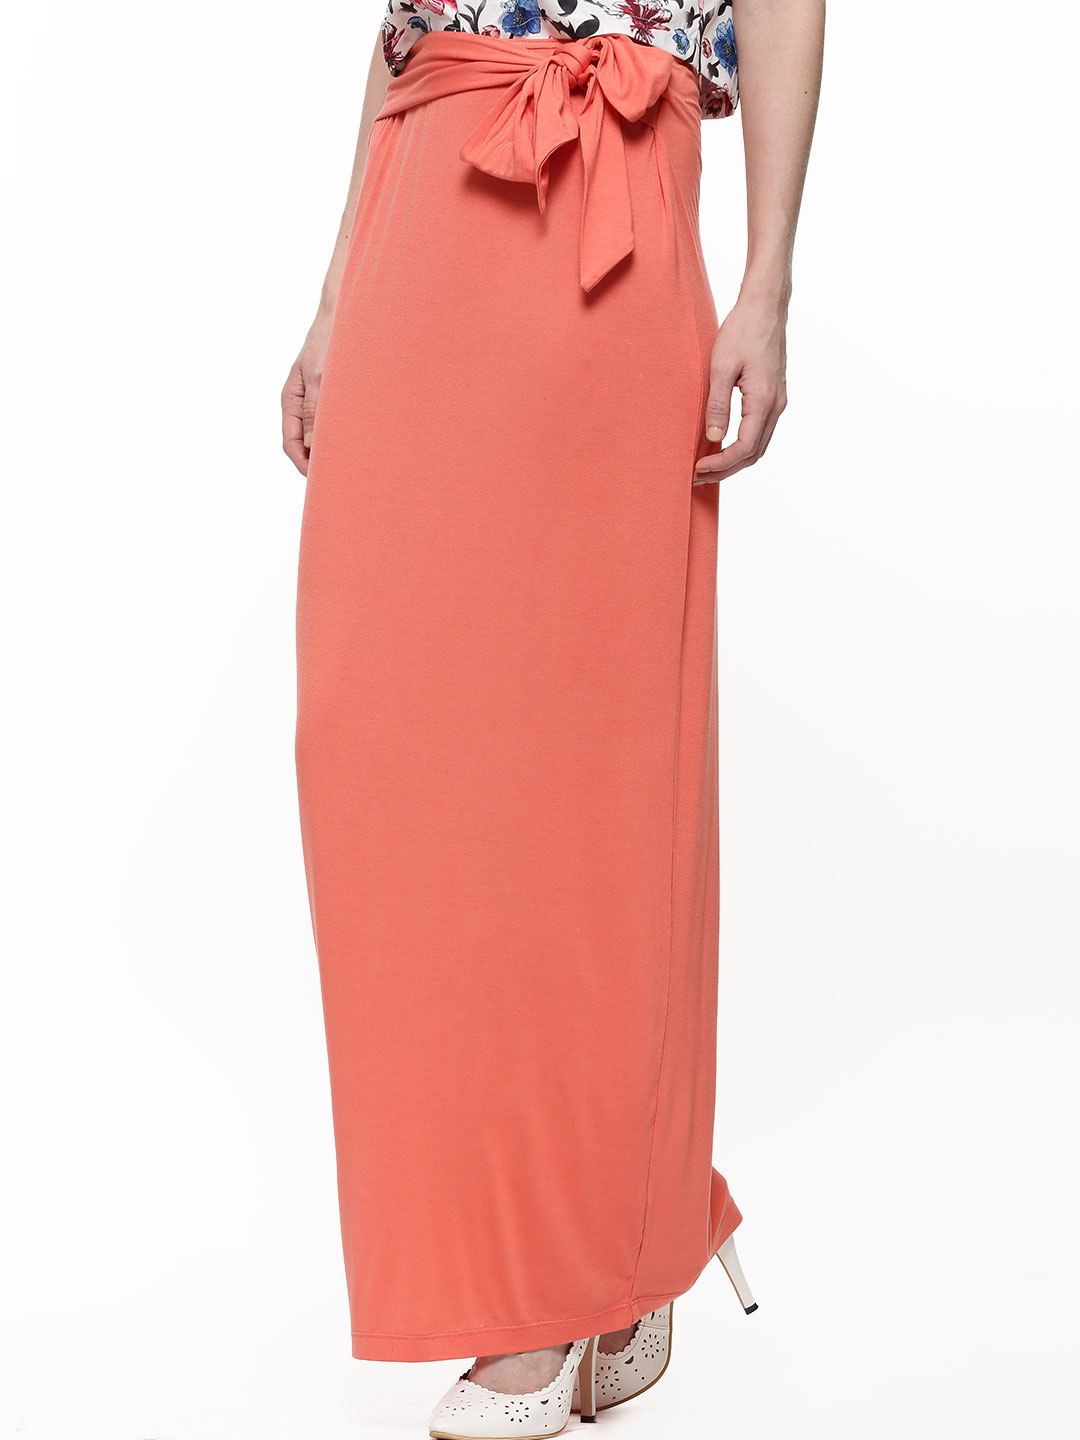 KOOVS Orange Tie Front Maxi Skirt 1